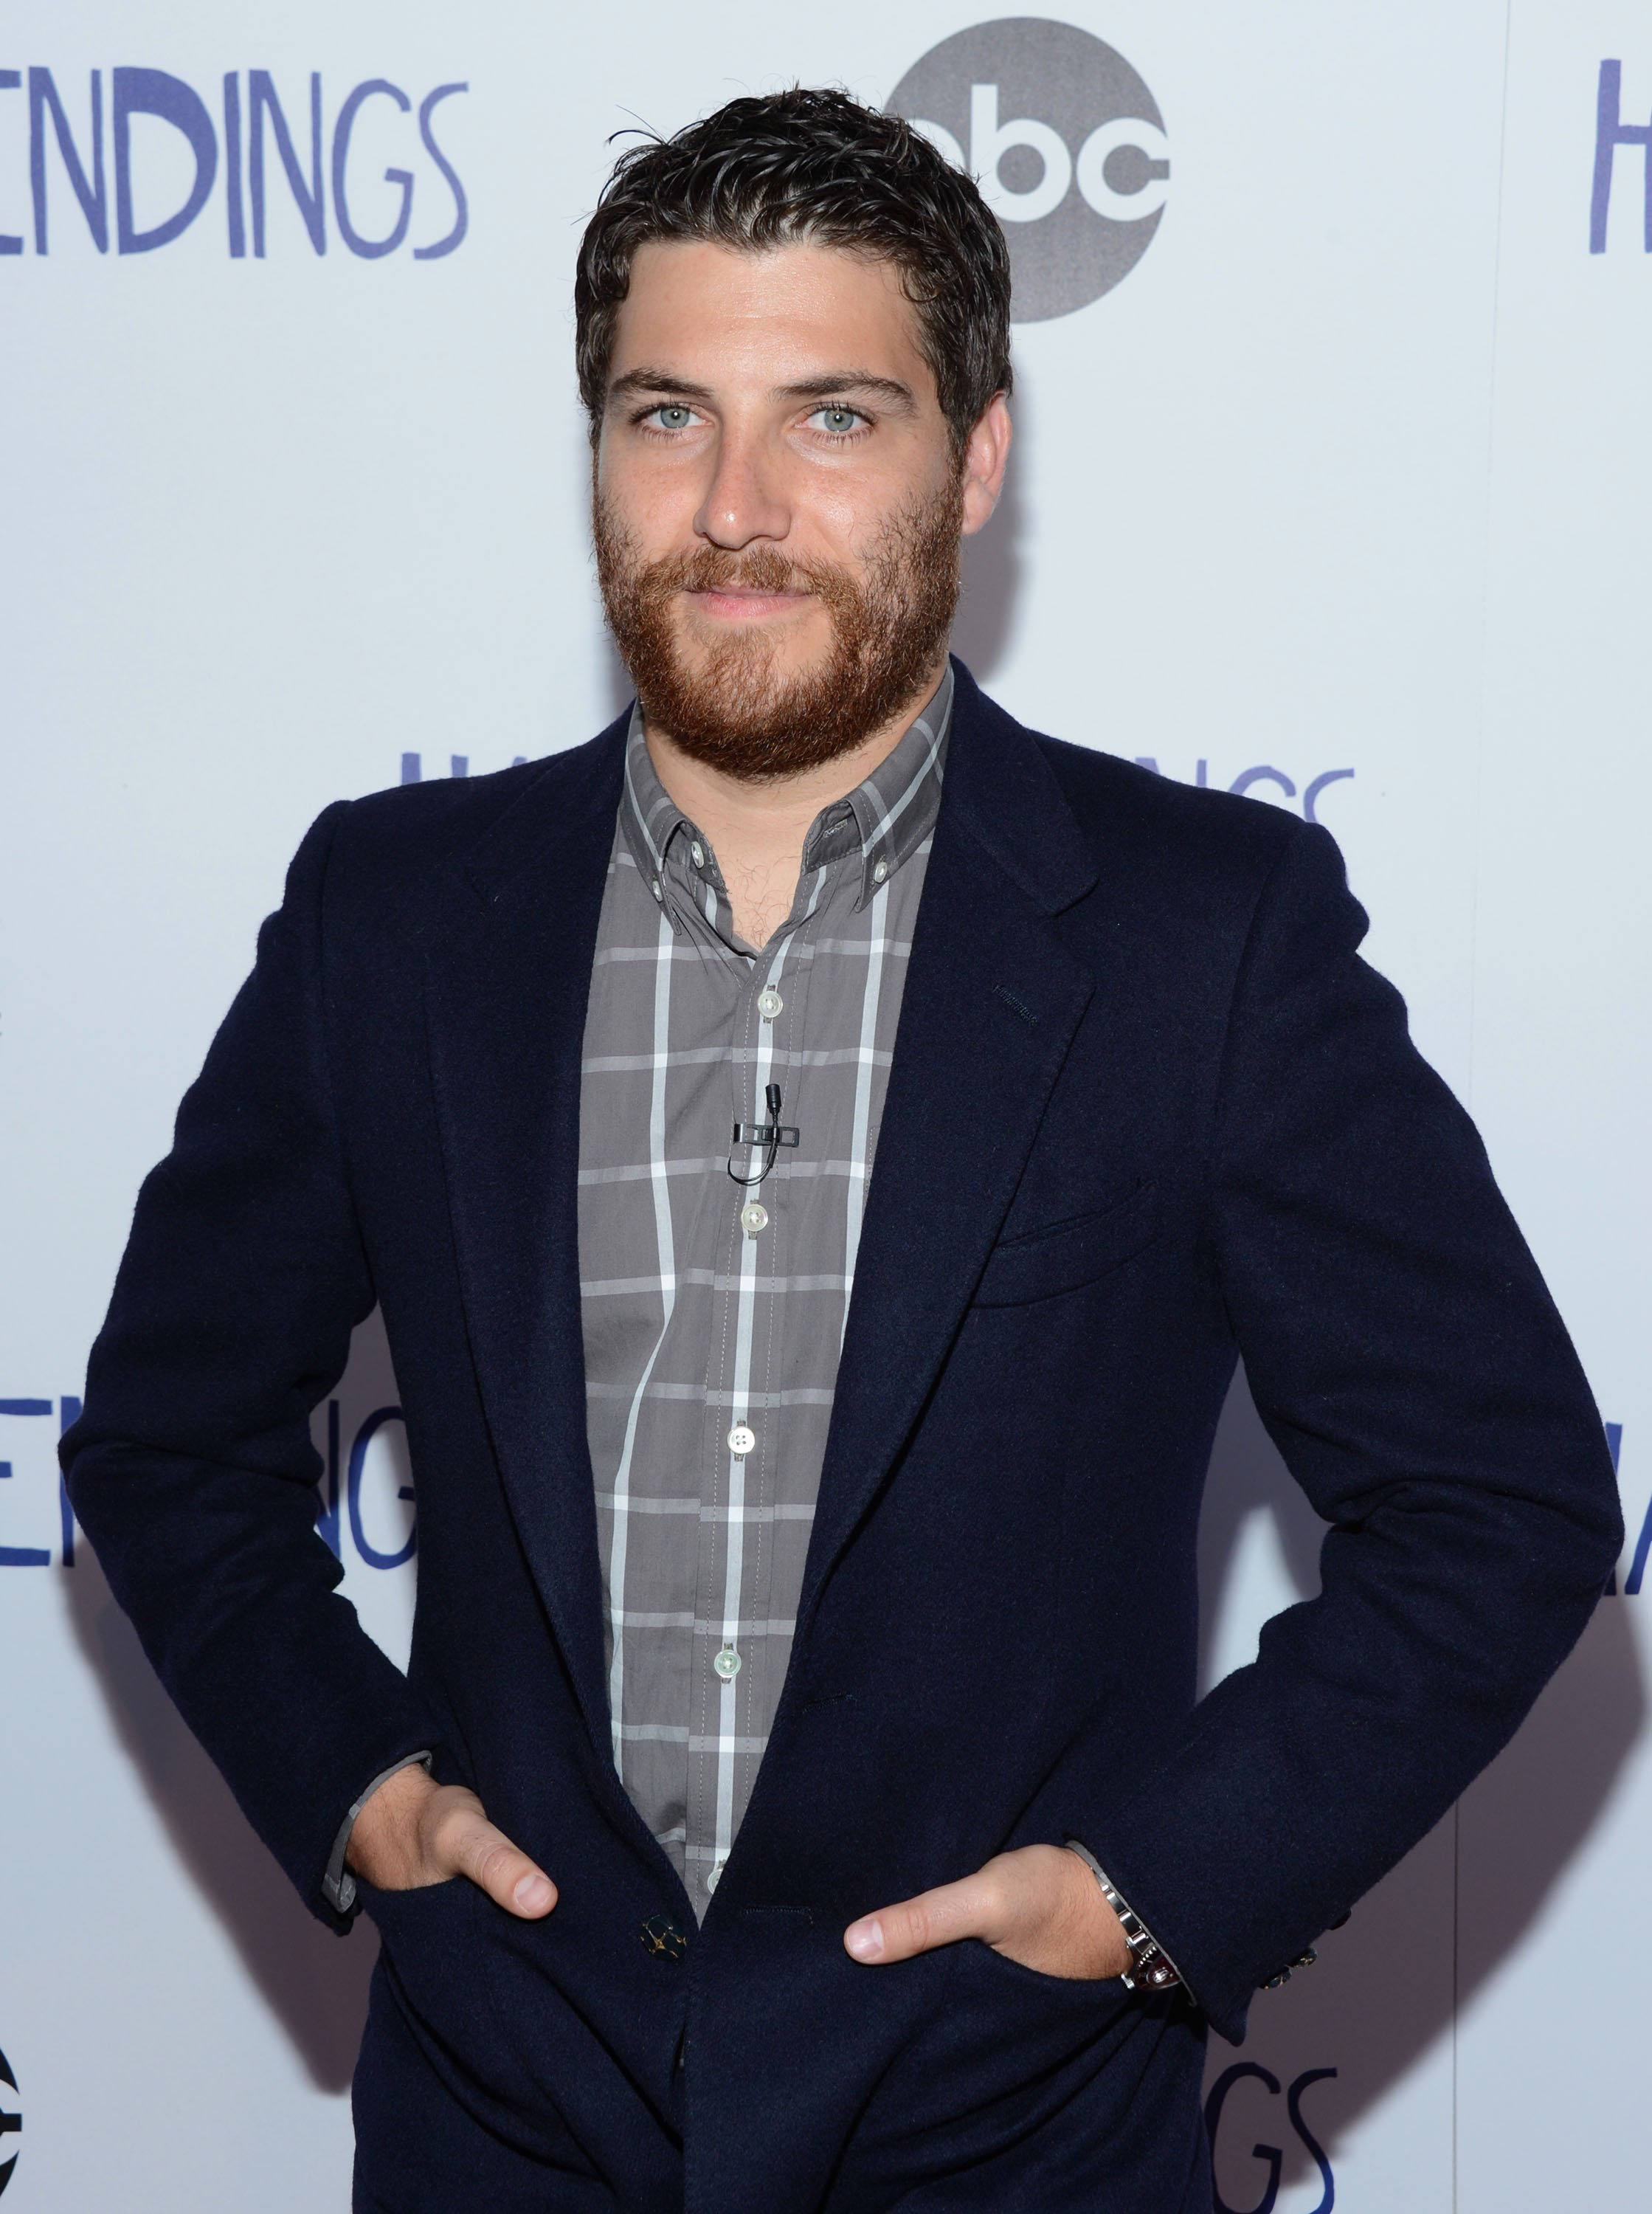 Adam Pally attends the Sony Pictures Television Hosts A Special Evening With ABC's 'Happy Endings' at the Leonard H. Goldenson Theatre on May 24, 2012 in North Hollywood